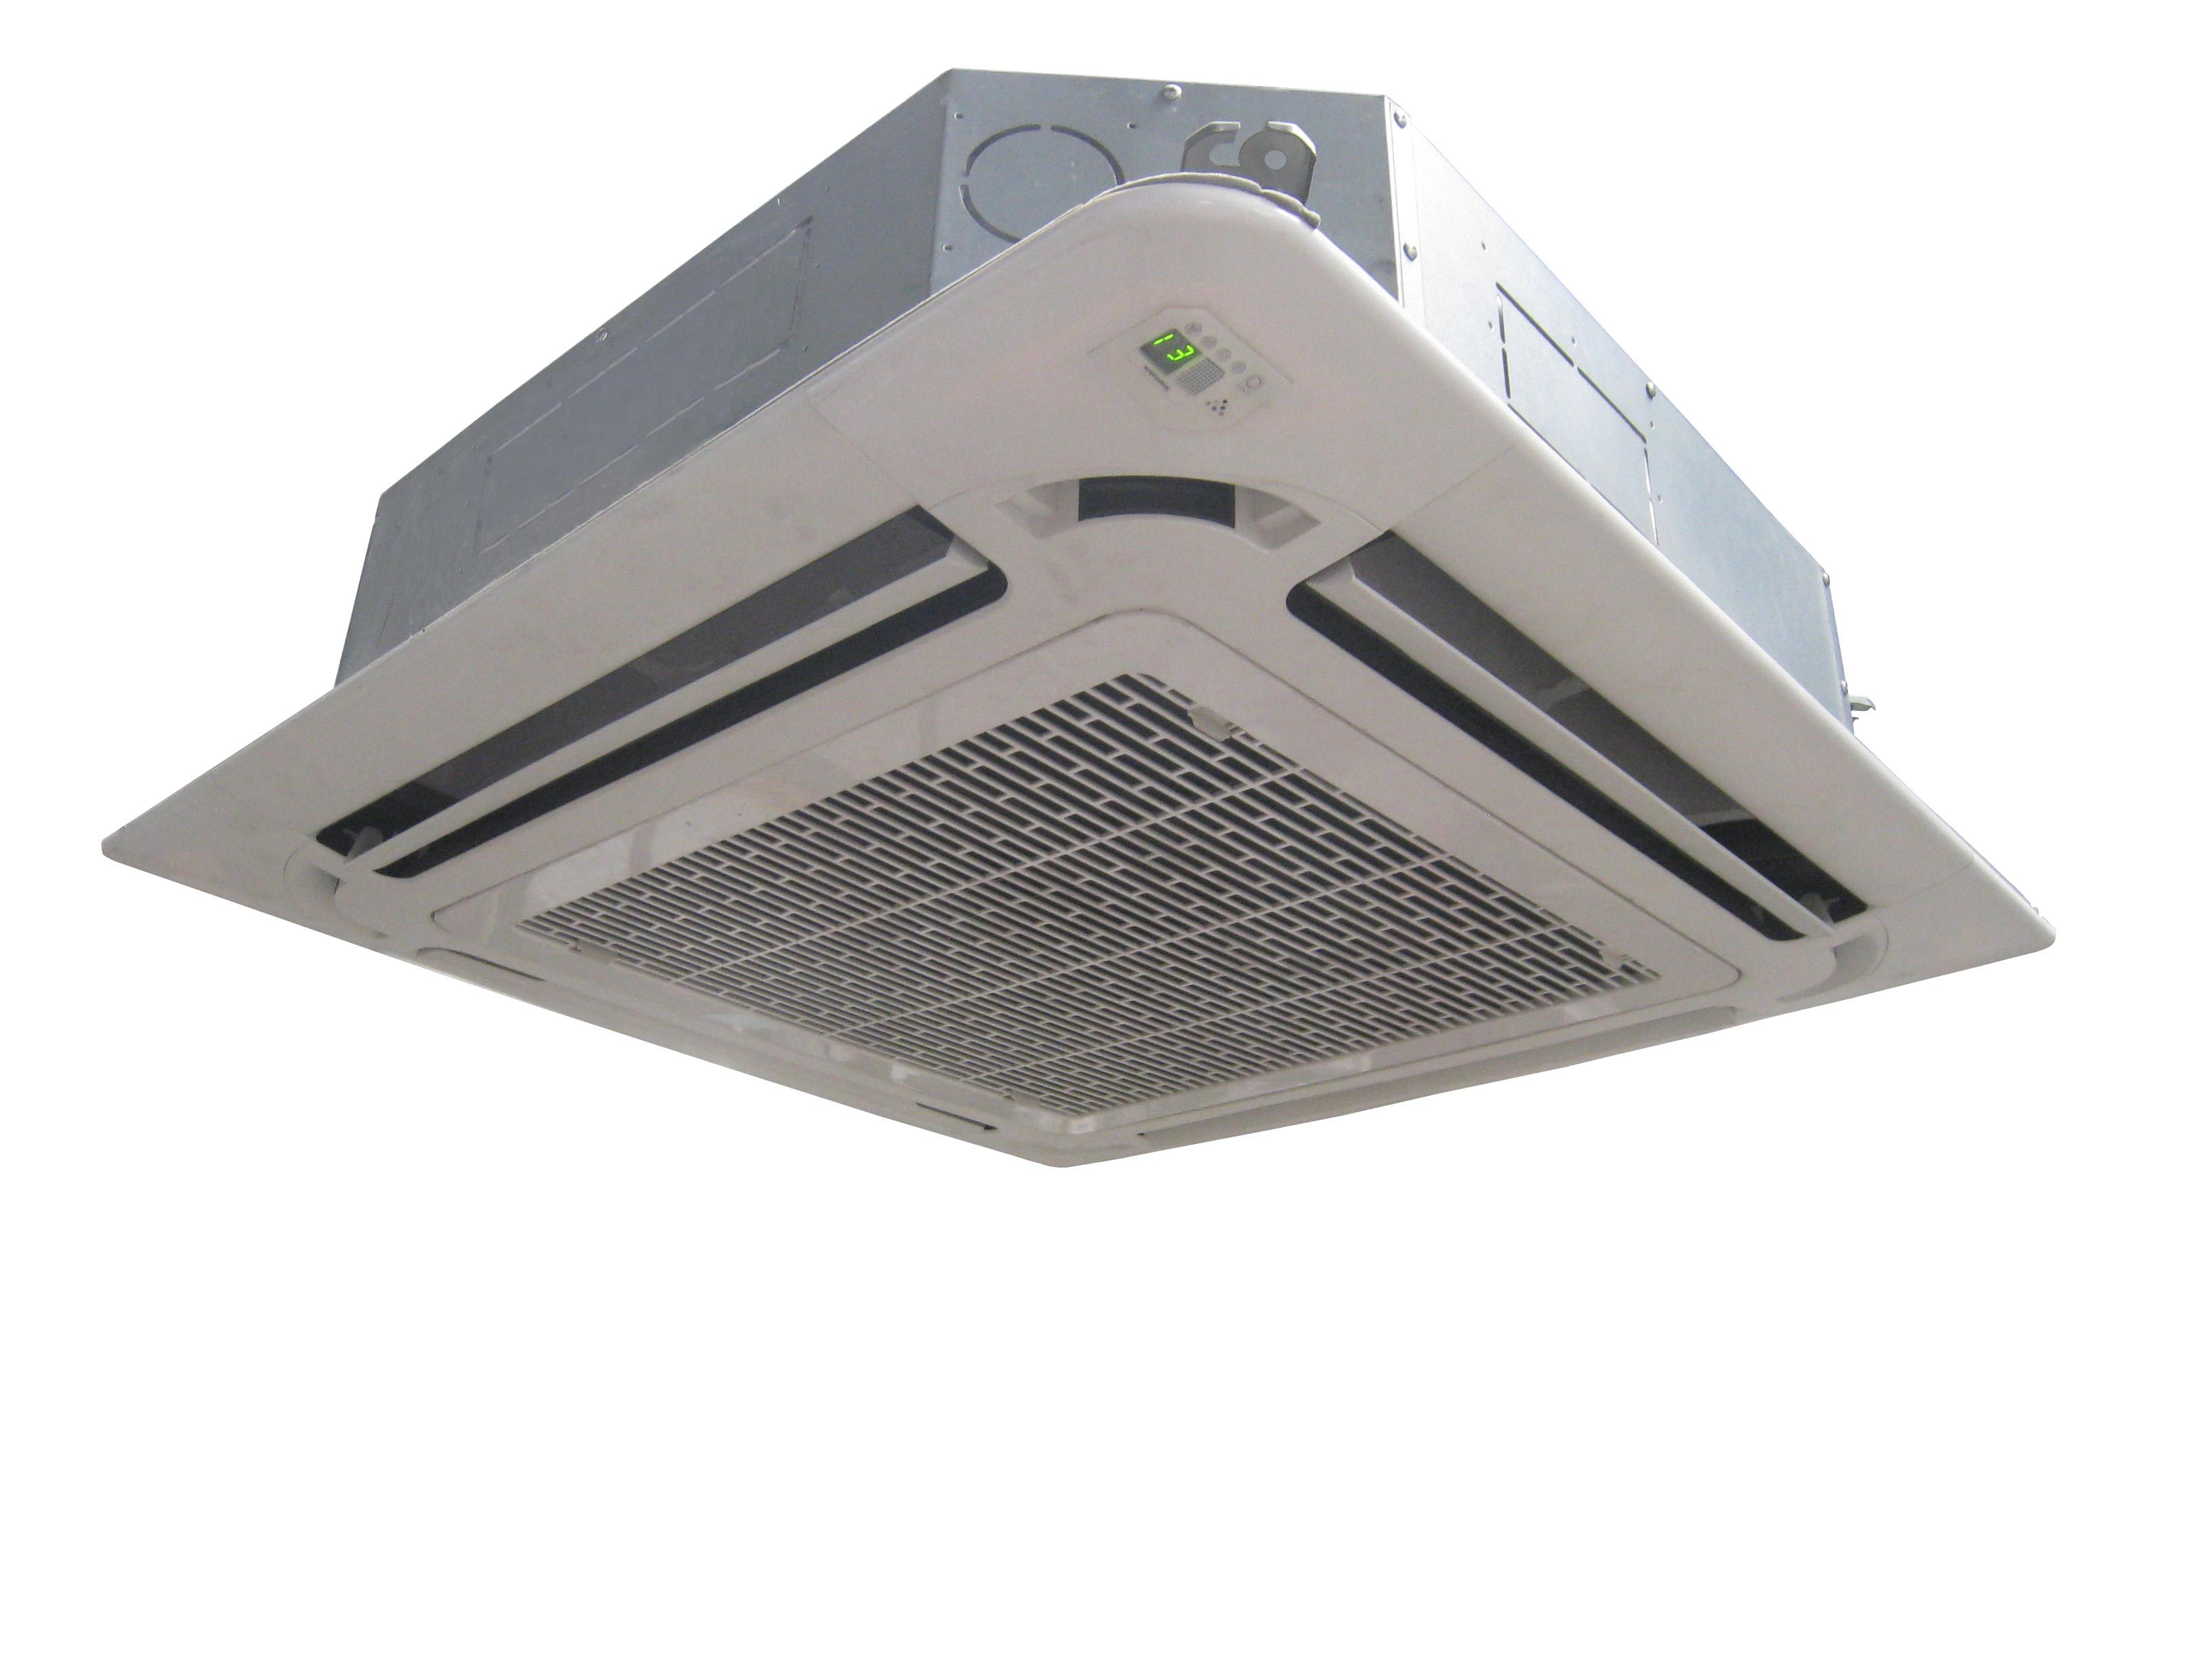 Flow Cassette Air Conditioning System Aircon247.com portable air  #51517A